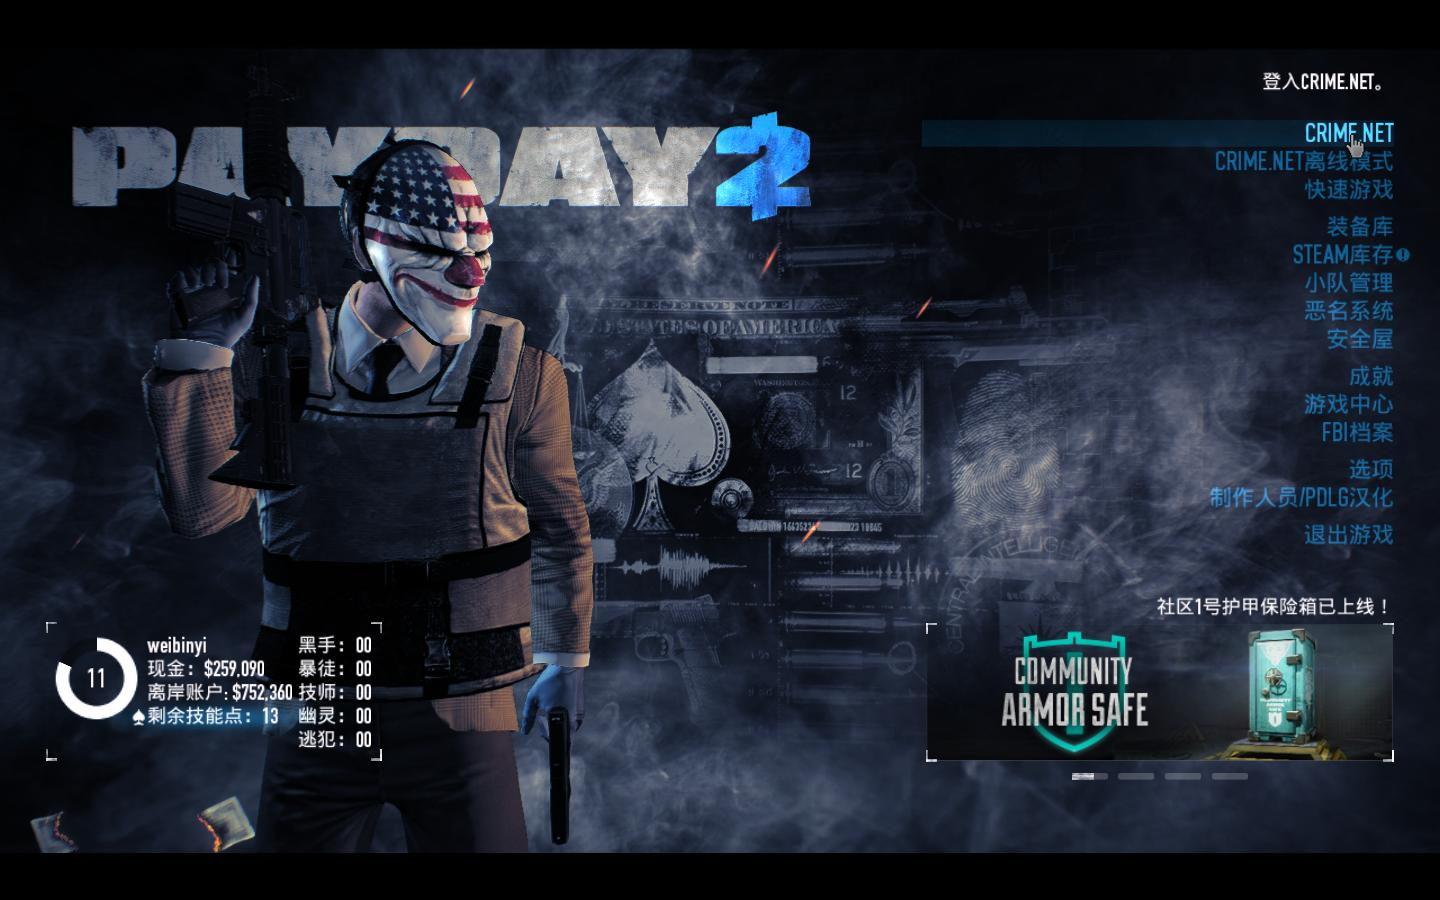 payday2_win32_release 2017-12-15 13-44-54-40.jpg